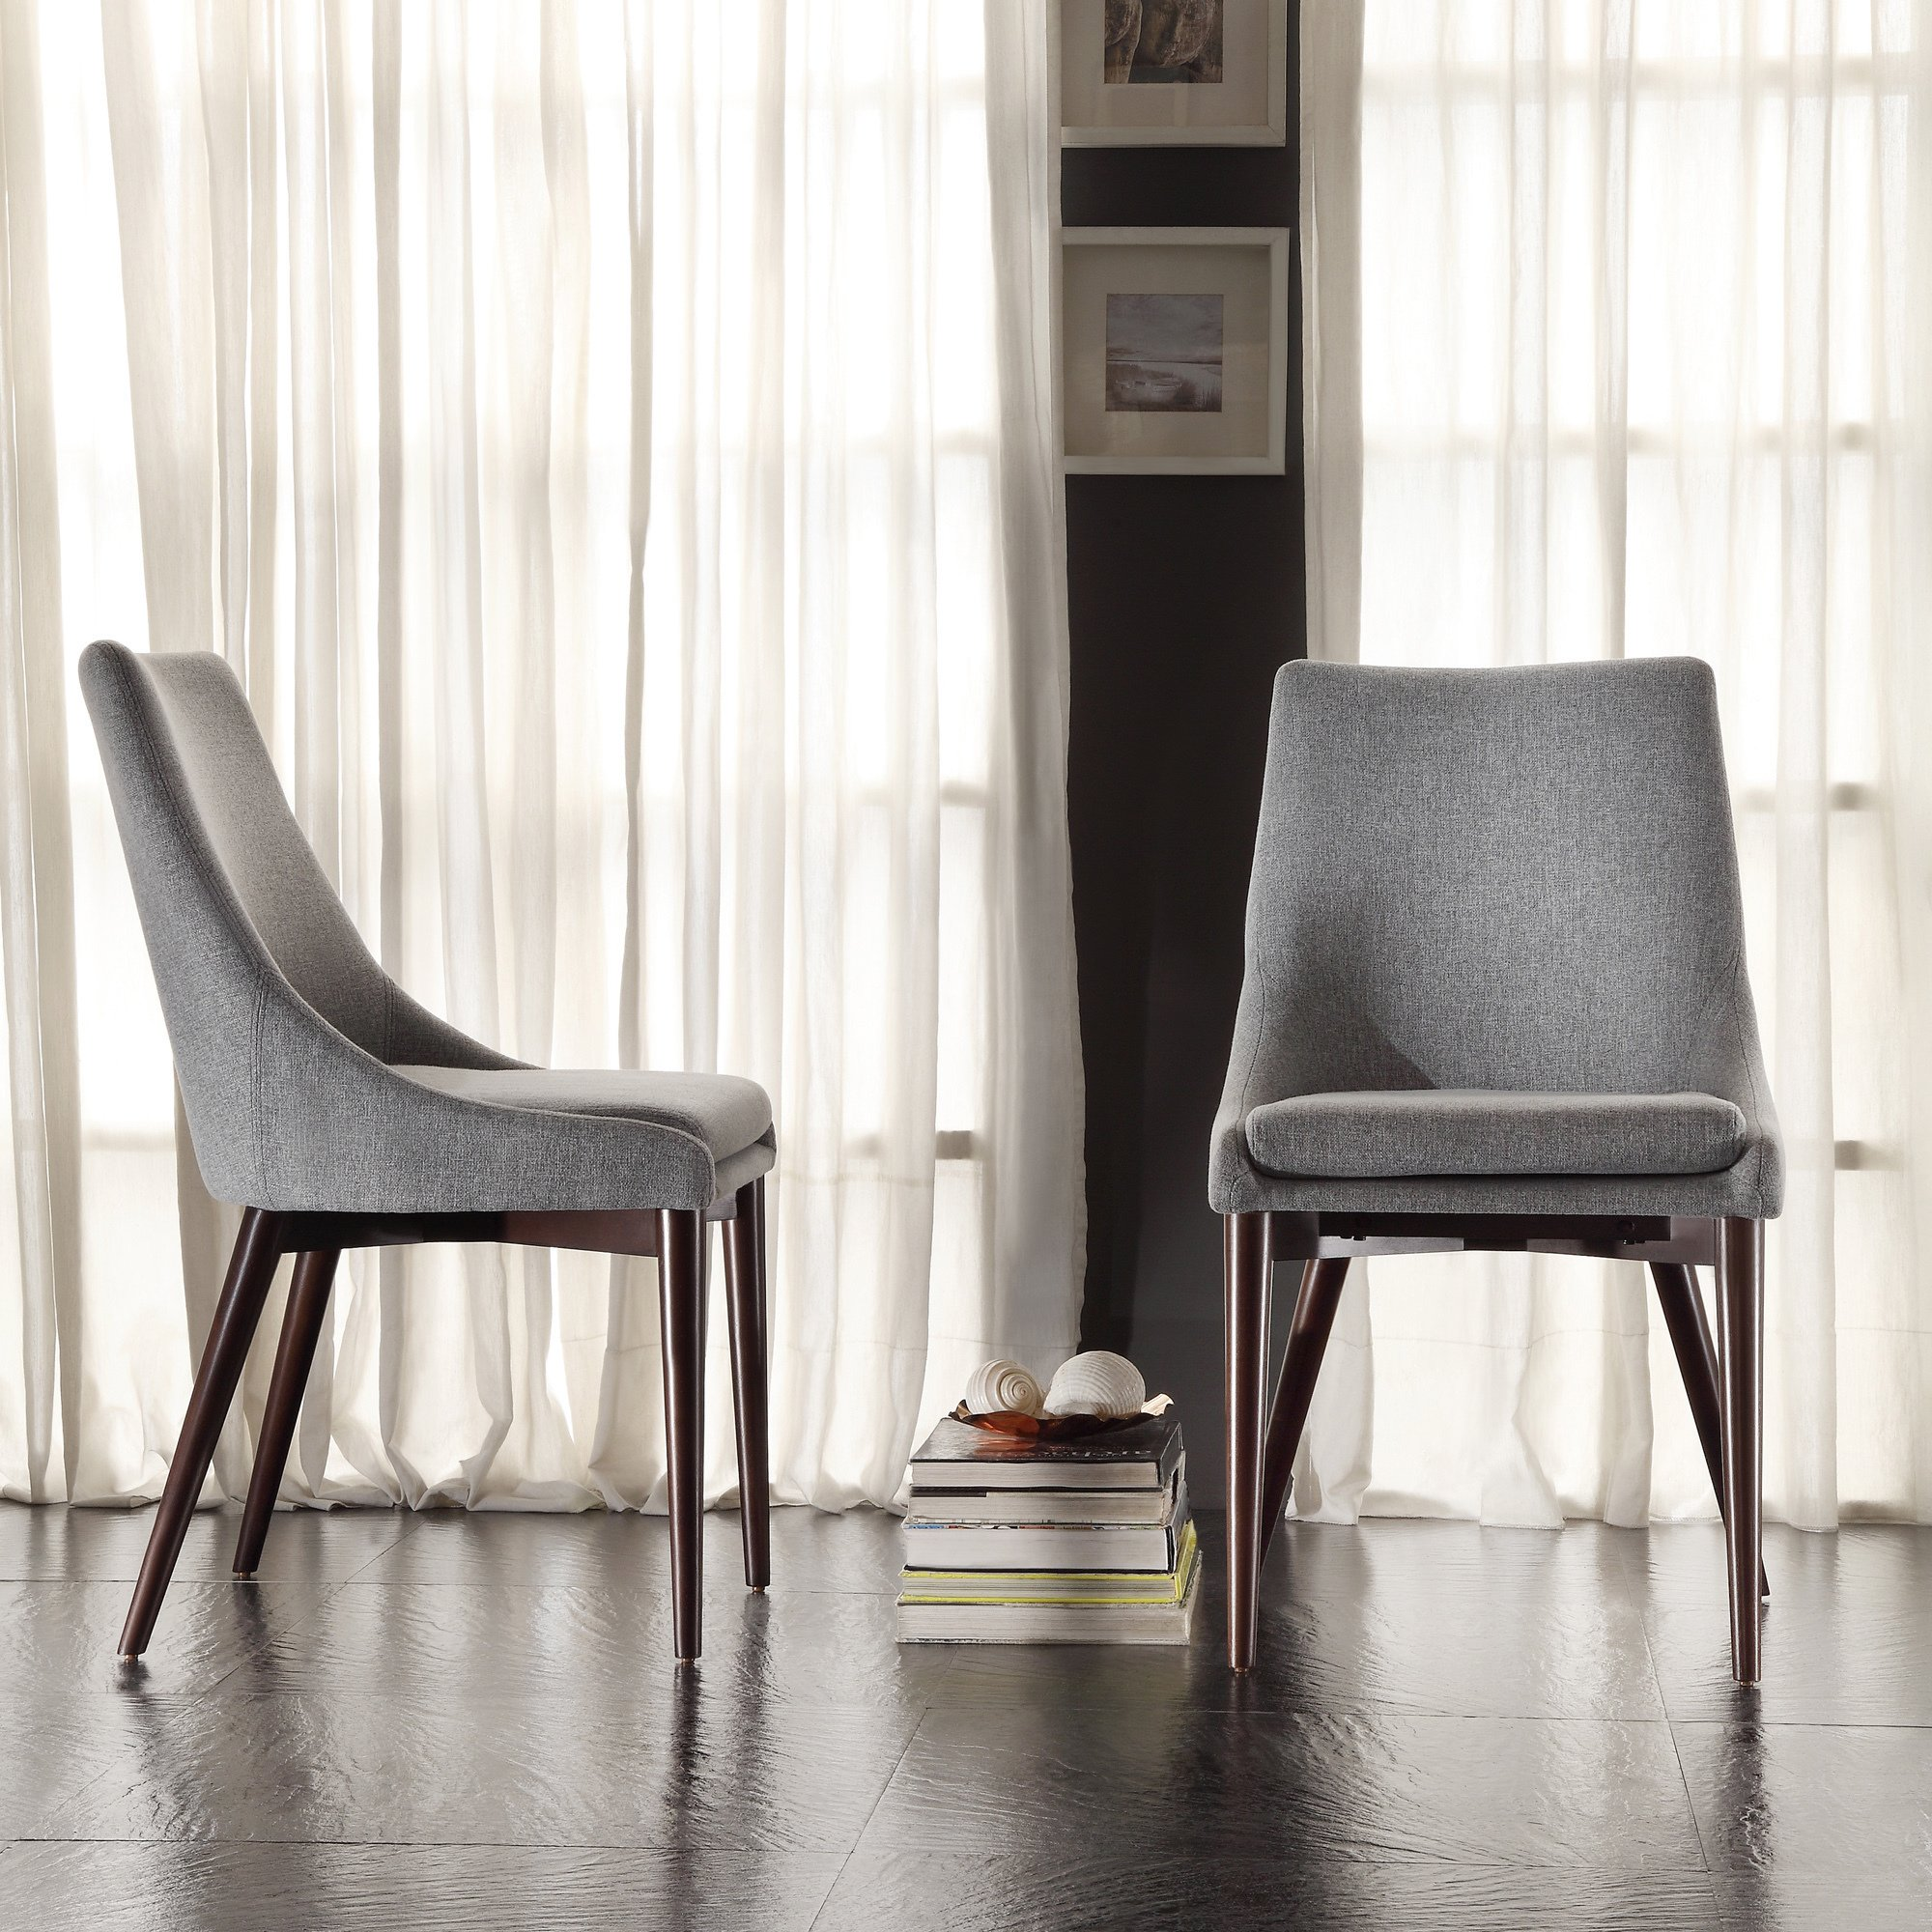 sasha mid century grey fabric upholstered tapered leg dining chairs set inspire modern round accent table free shipping today patio drink small square kitchen island bar stools